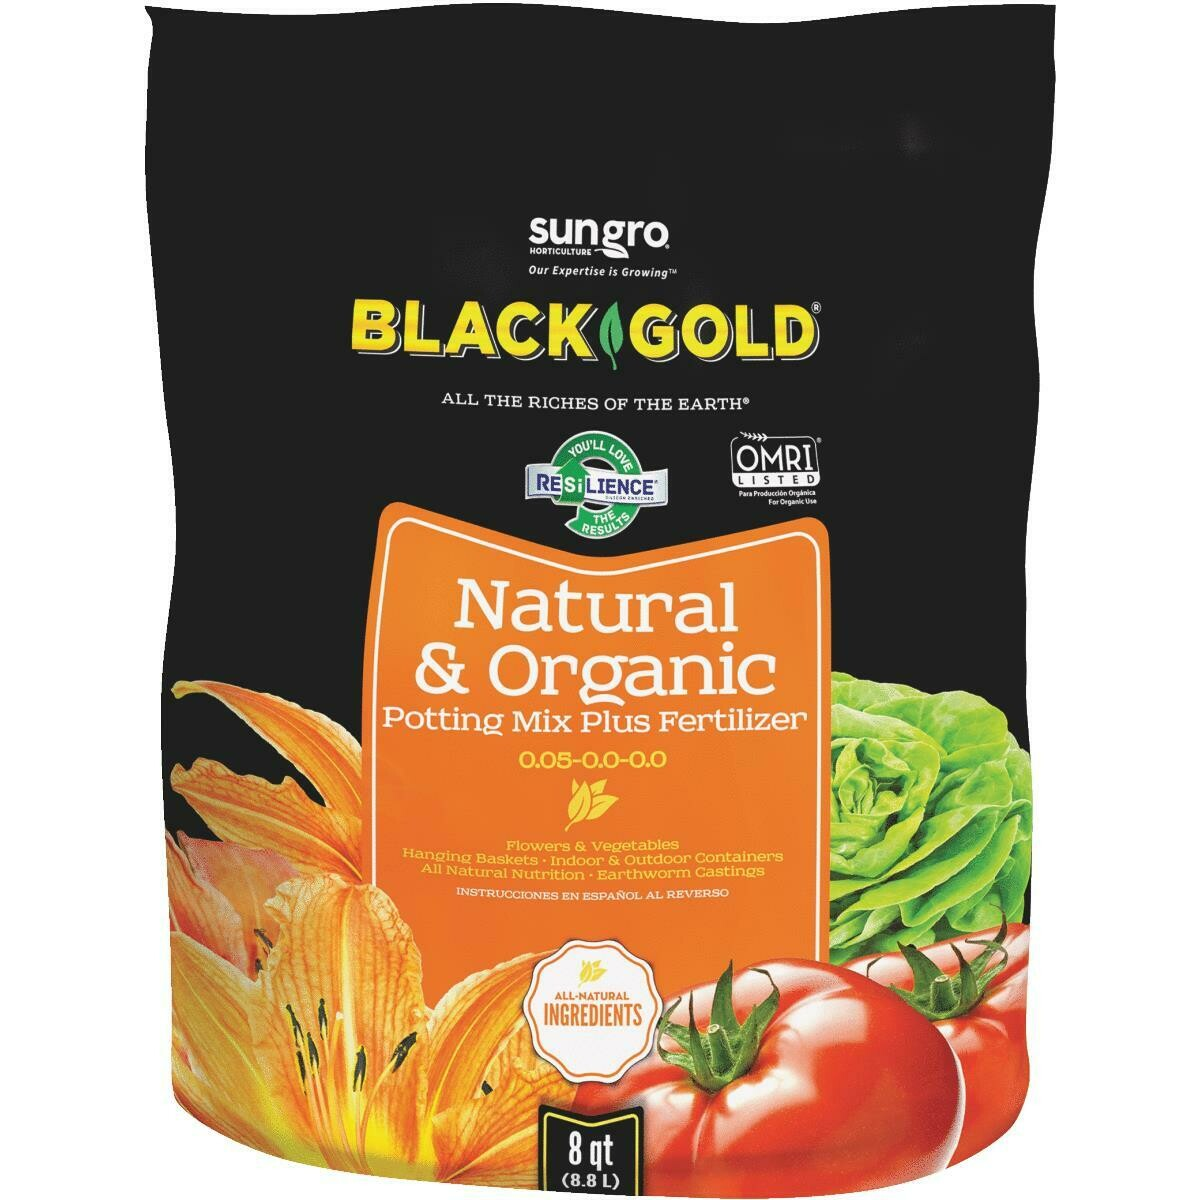 Black Gold Natural & Organic Potting Mix - 8 quart